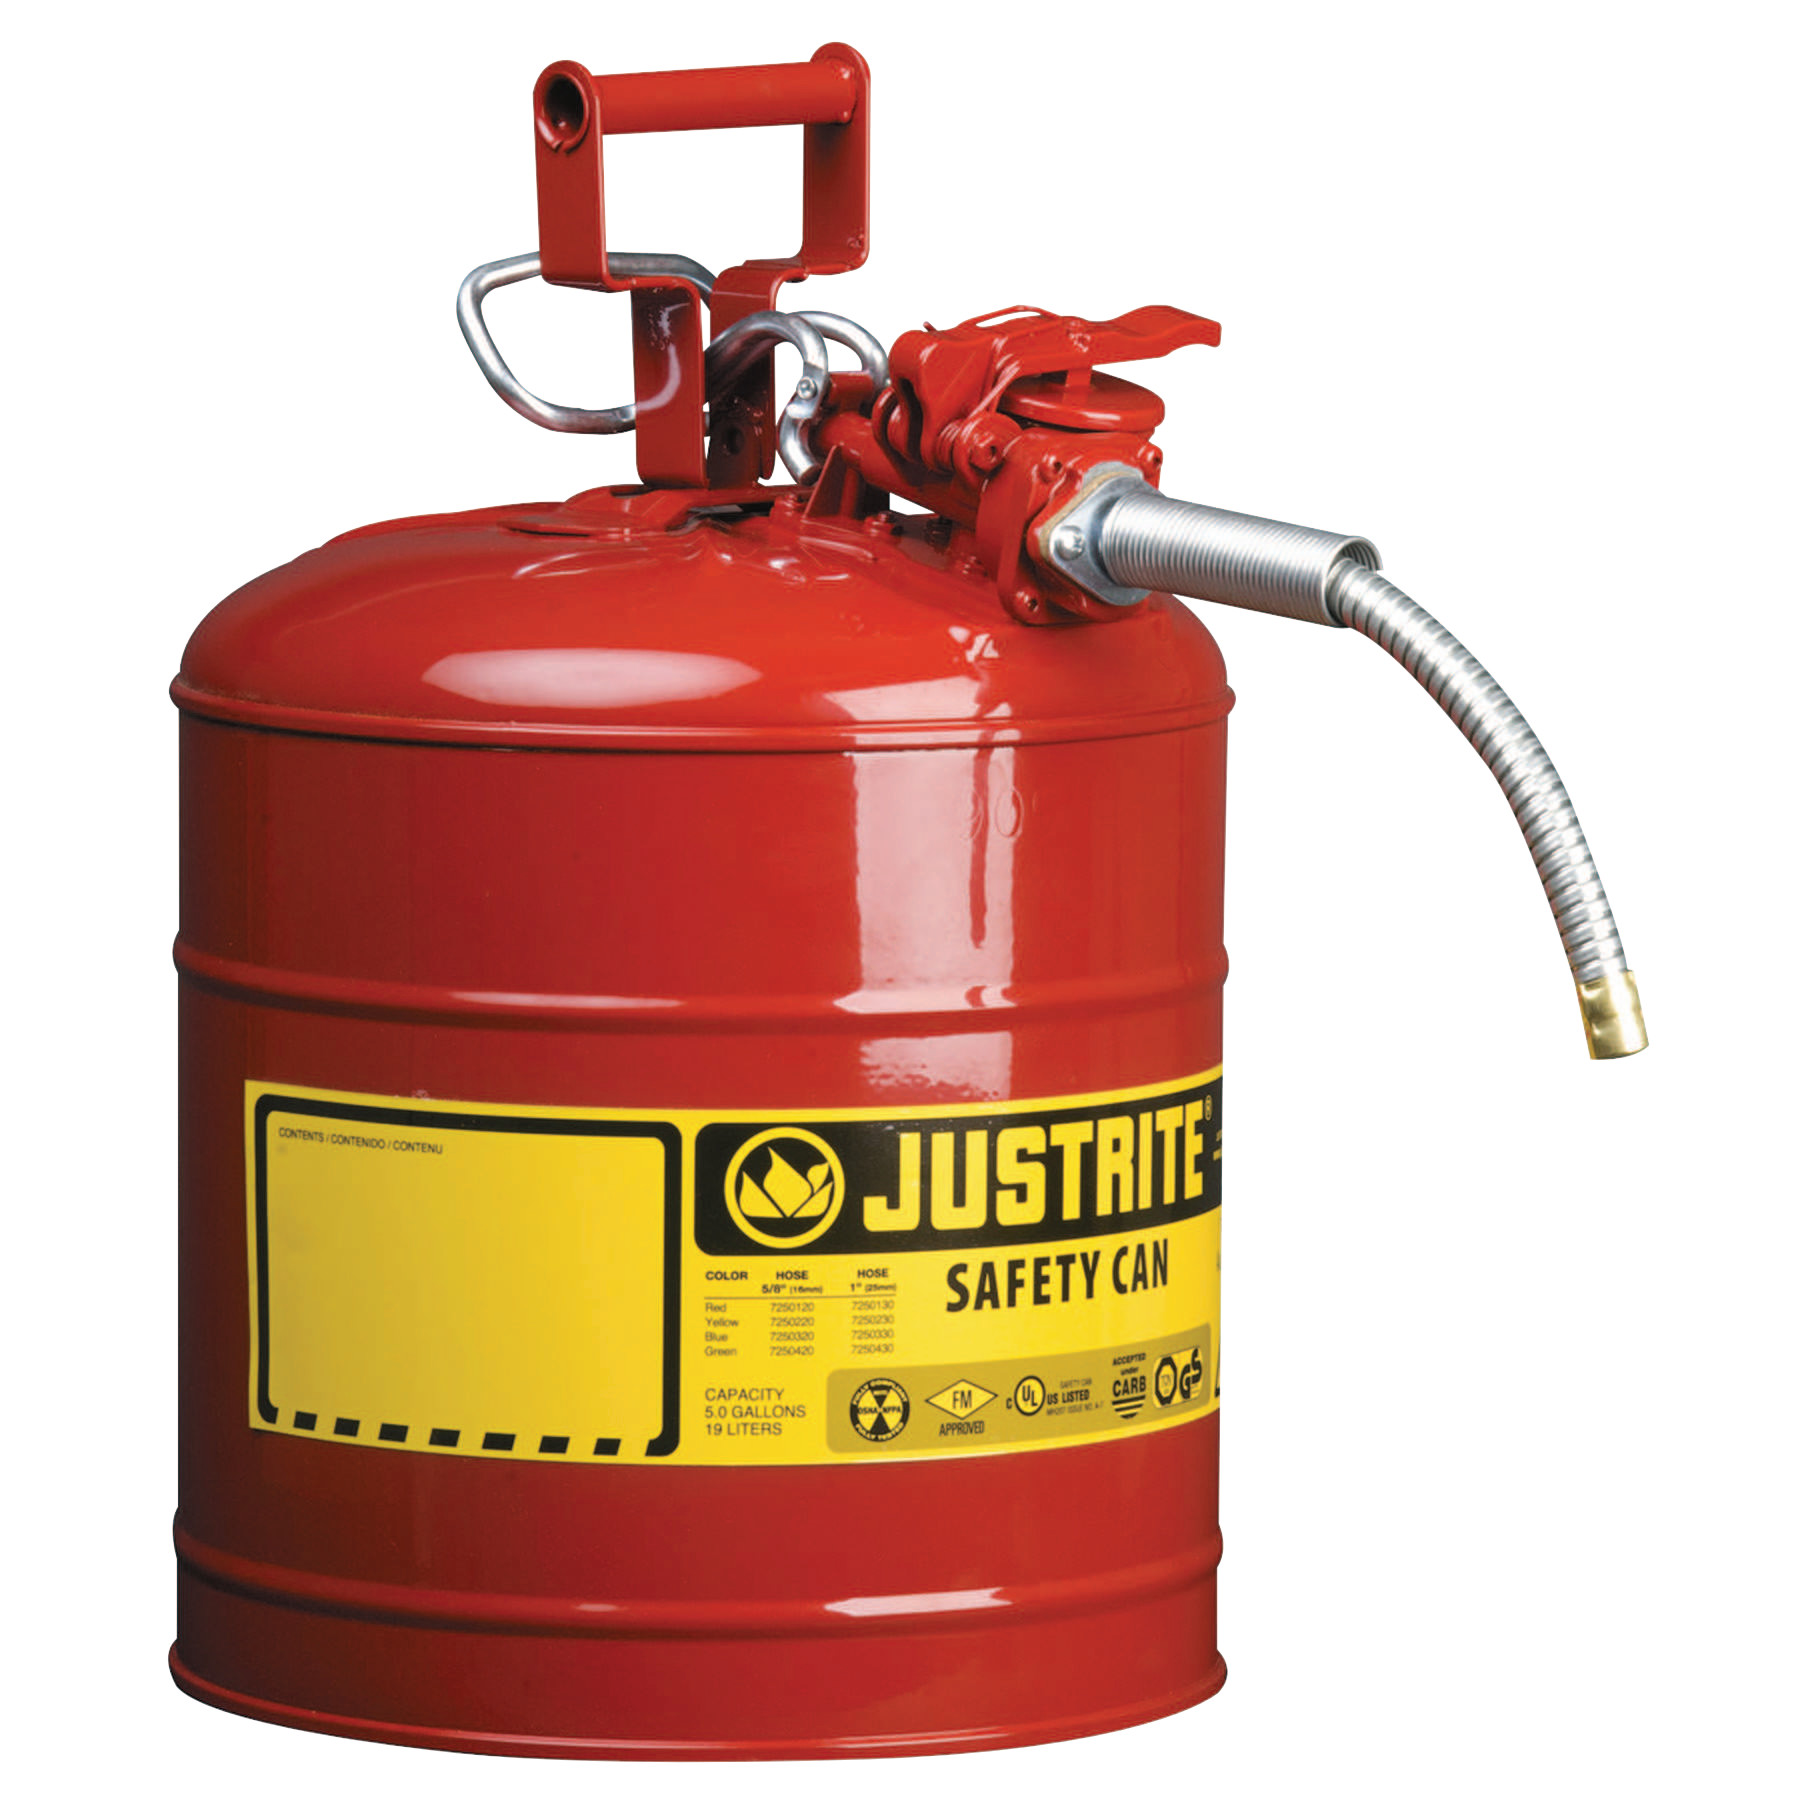 Justrite Type II AccuFlow Safety Cans, Flammables, 5 gal, Red